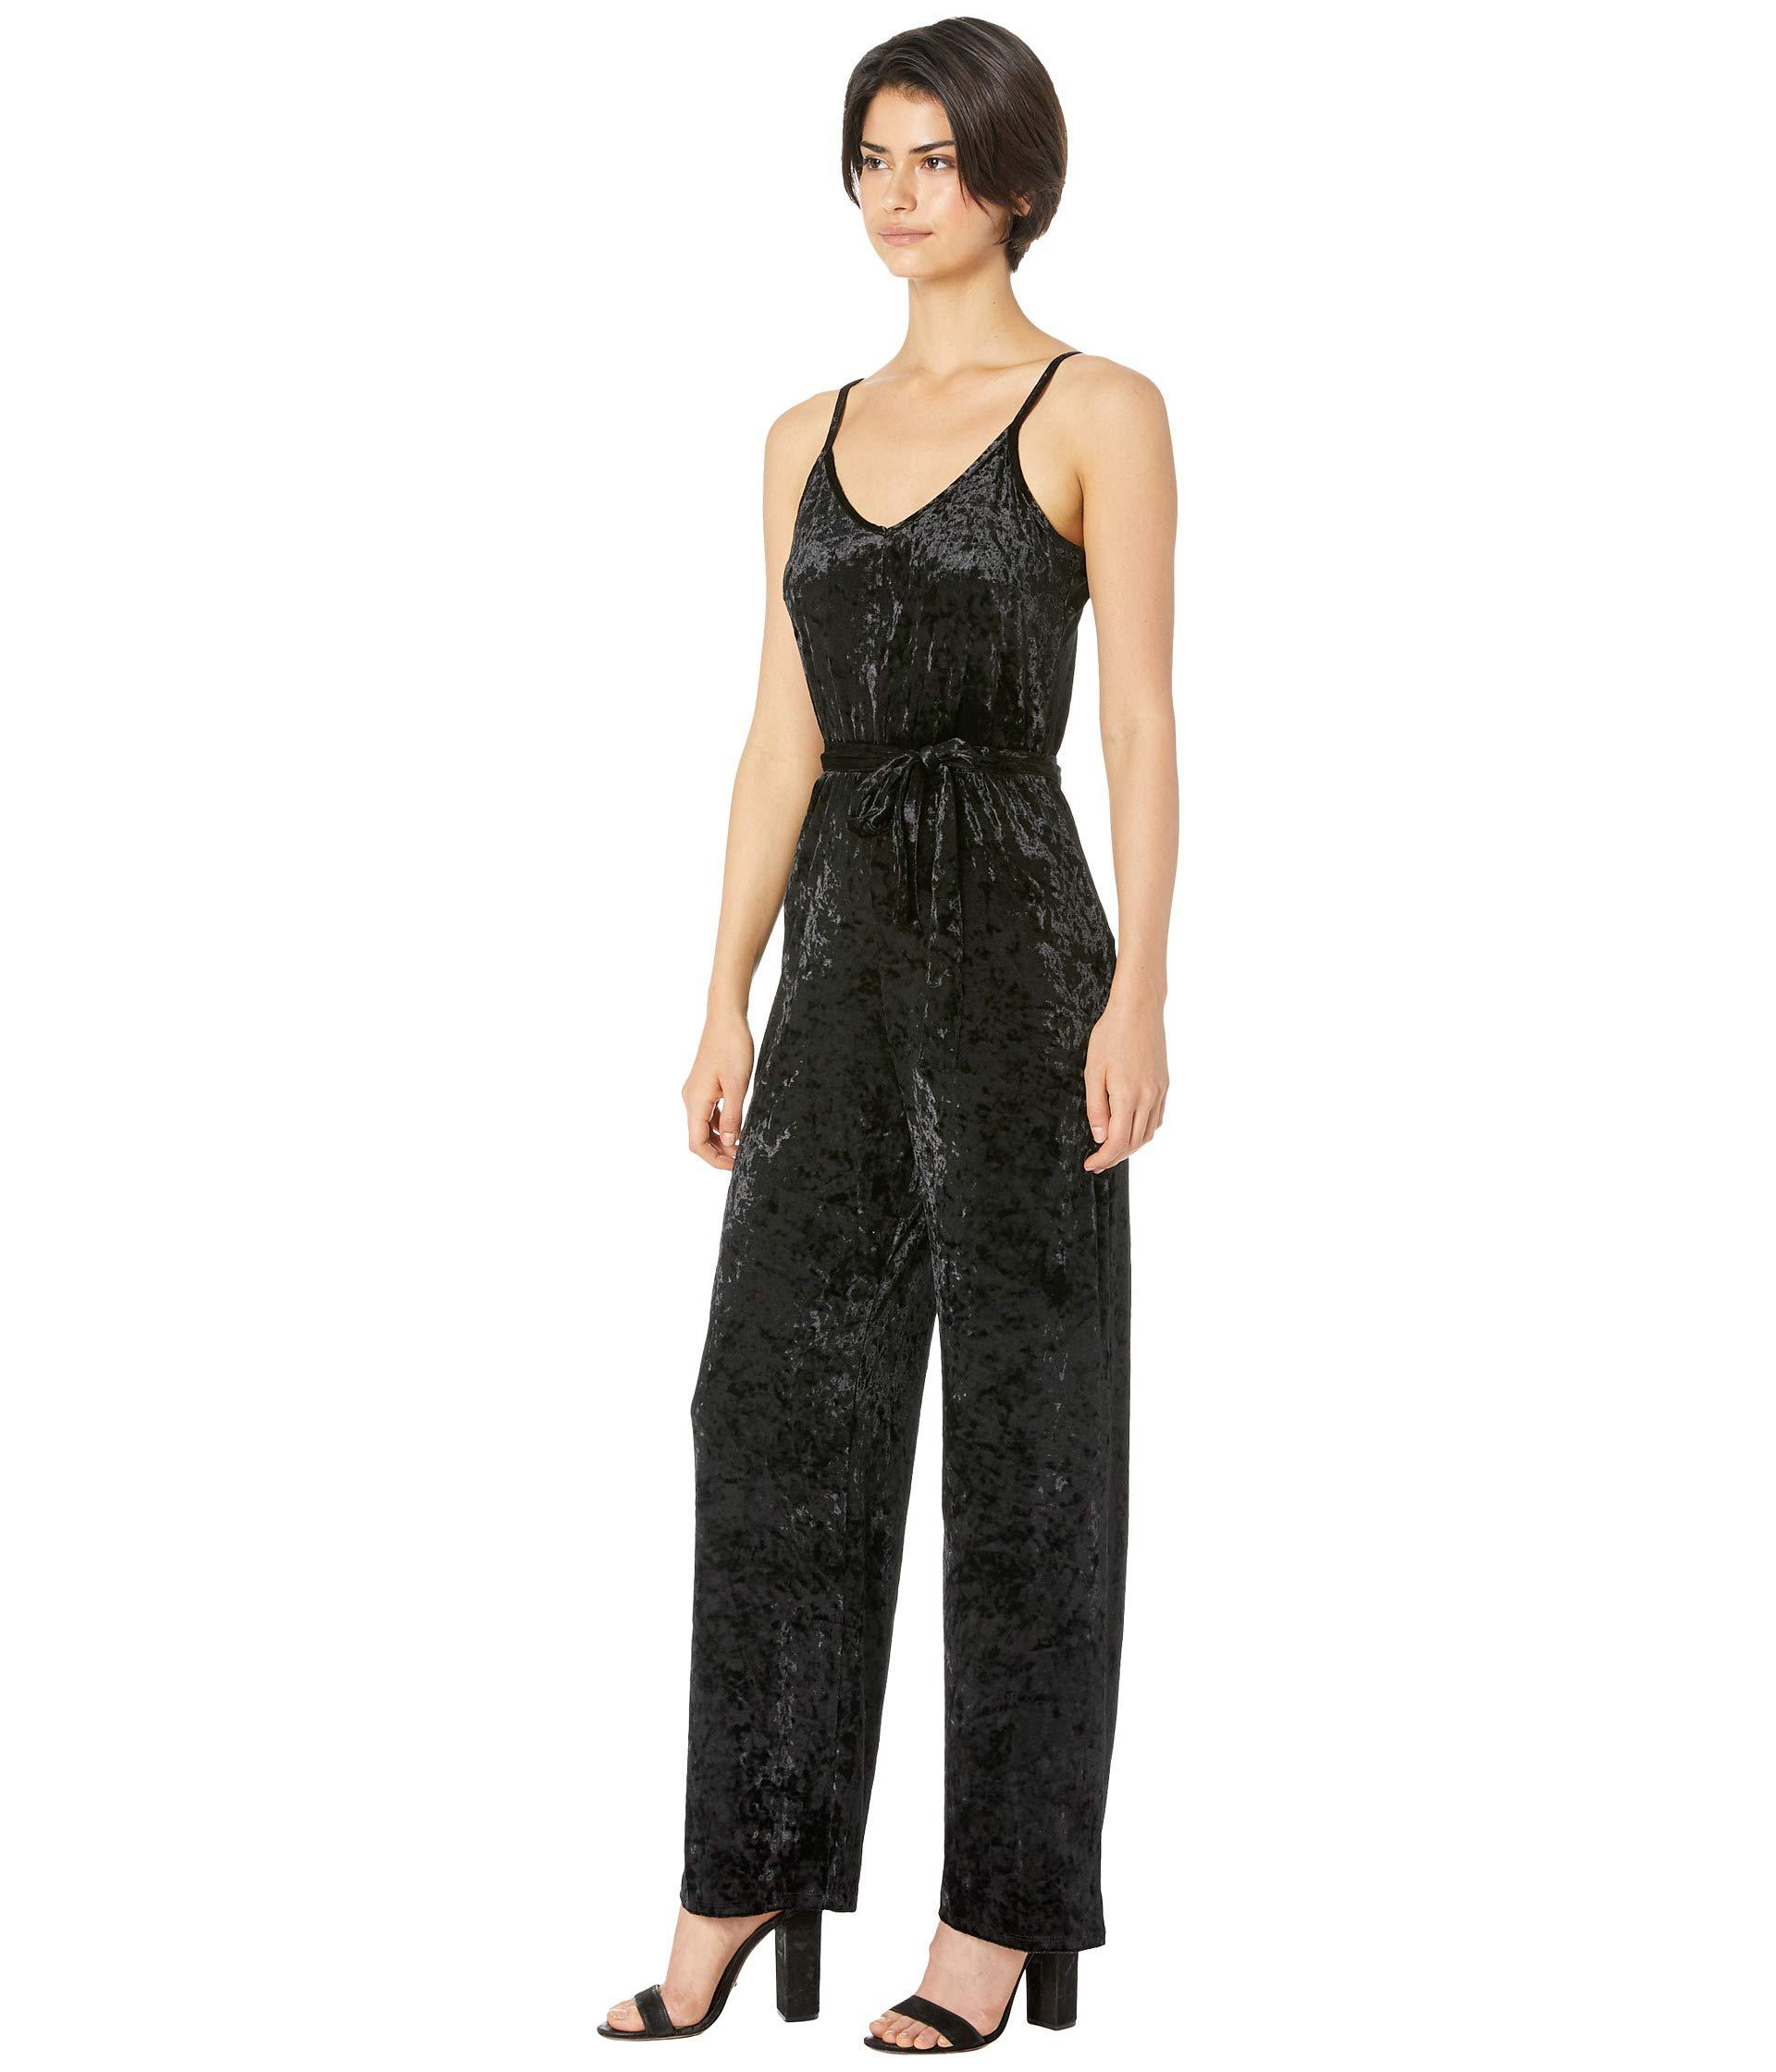 94340e23908 Lyst - Roxy Cha For Now Jumpsuit (true Black) Women s Jumpsuit   Rompers  One Piece in Black - Save 38.983050847457626%